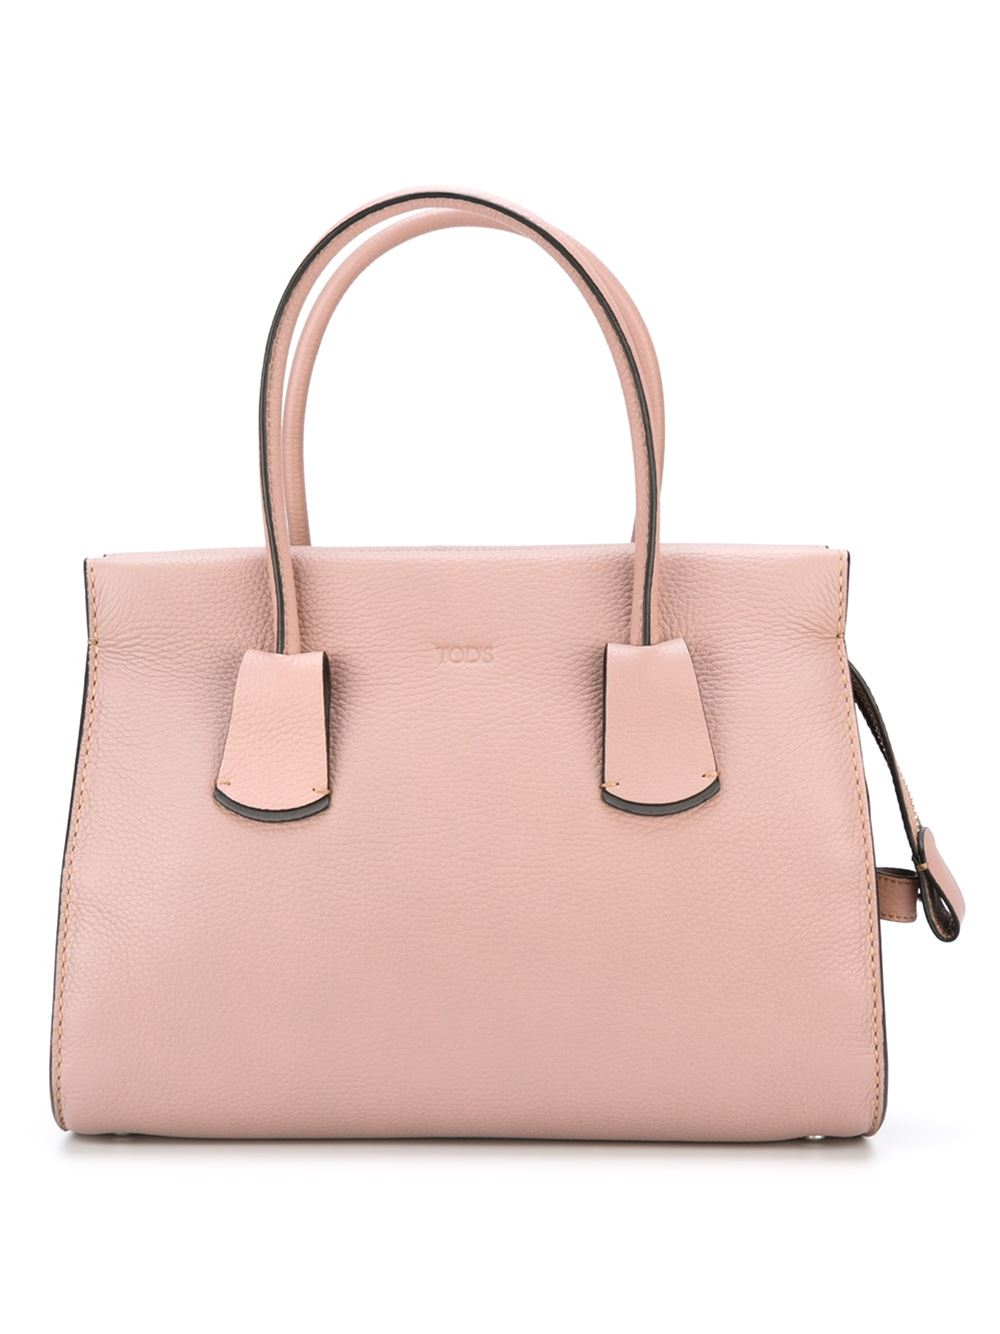 Tod's Small Bowler Tote in Pink (PINK & PURPLE)